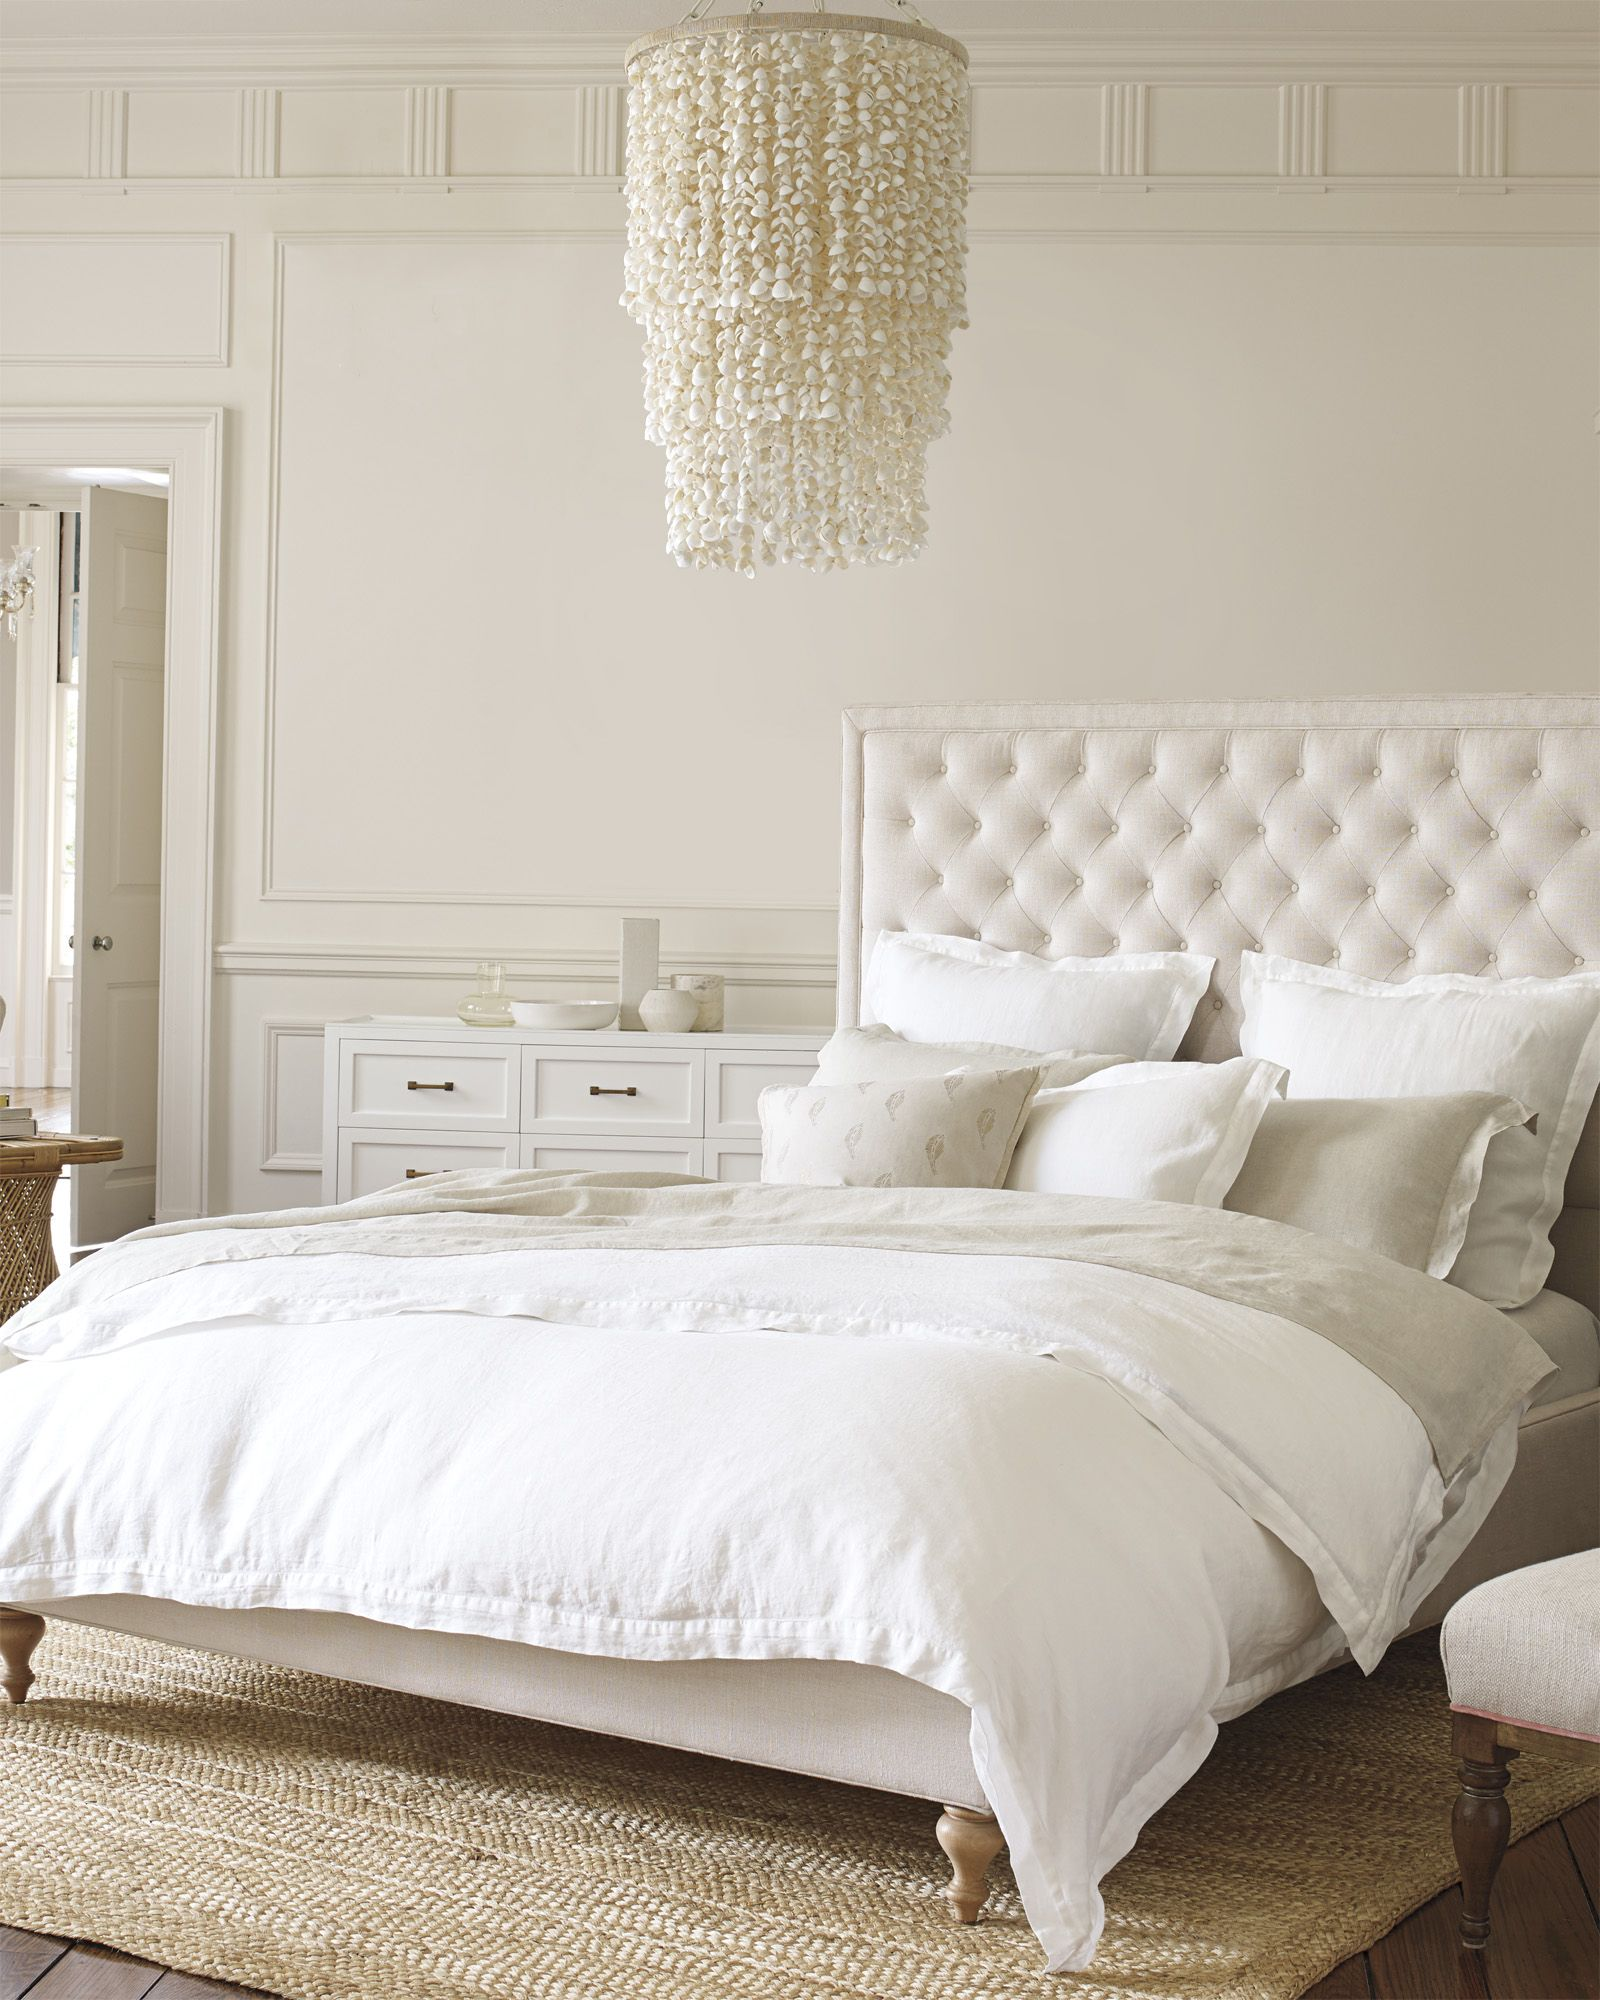 Aptos Shell Chandelier Idee Chambre Chambre Francaise